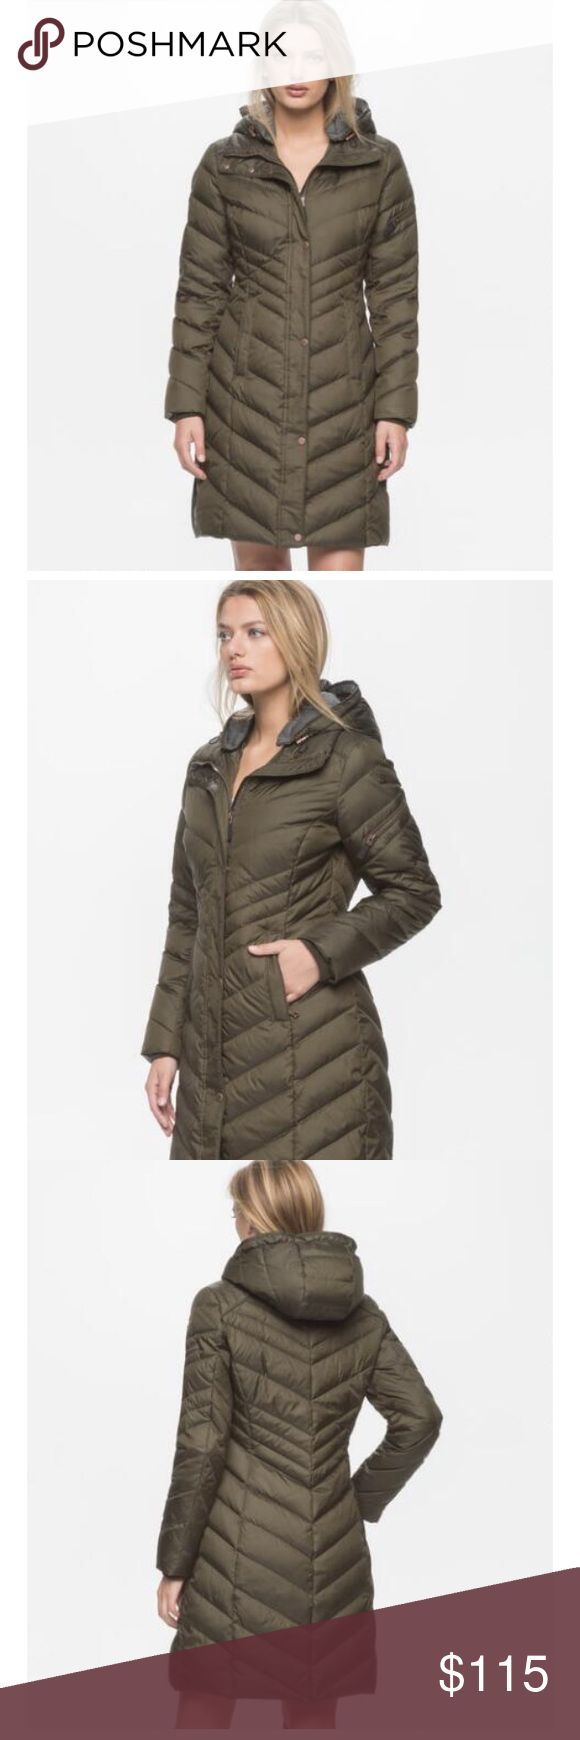 ANDREW MARC Rayna puffer coat New with tags! Gorgeous Rayna puffer coat in beautiful olive color from ANDREW MARC NEW YORK.  Size S. Purchased directly from Andrew Marc.  *Water-repellant exterior and 60/40 down fill.  *Zipper closure features hidden snap placket.  *Pockets are lined in fleece to keep hands toasty warm.  *Jersey-lined removable hood. *Machine wash cold This coat is fantastic!!! Andrew Marc Jackets & Coats Puffers